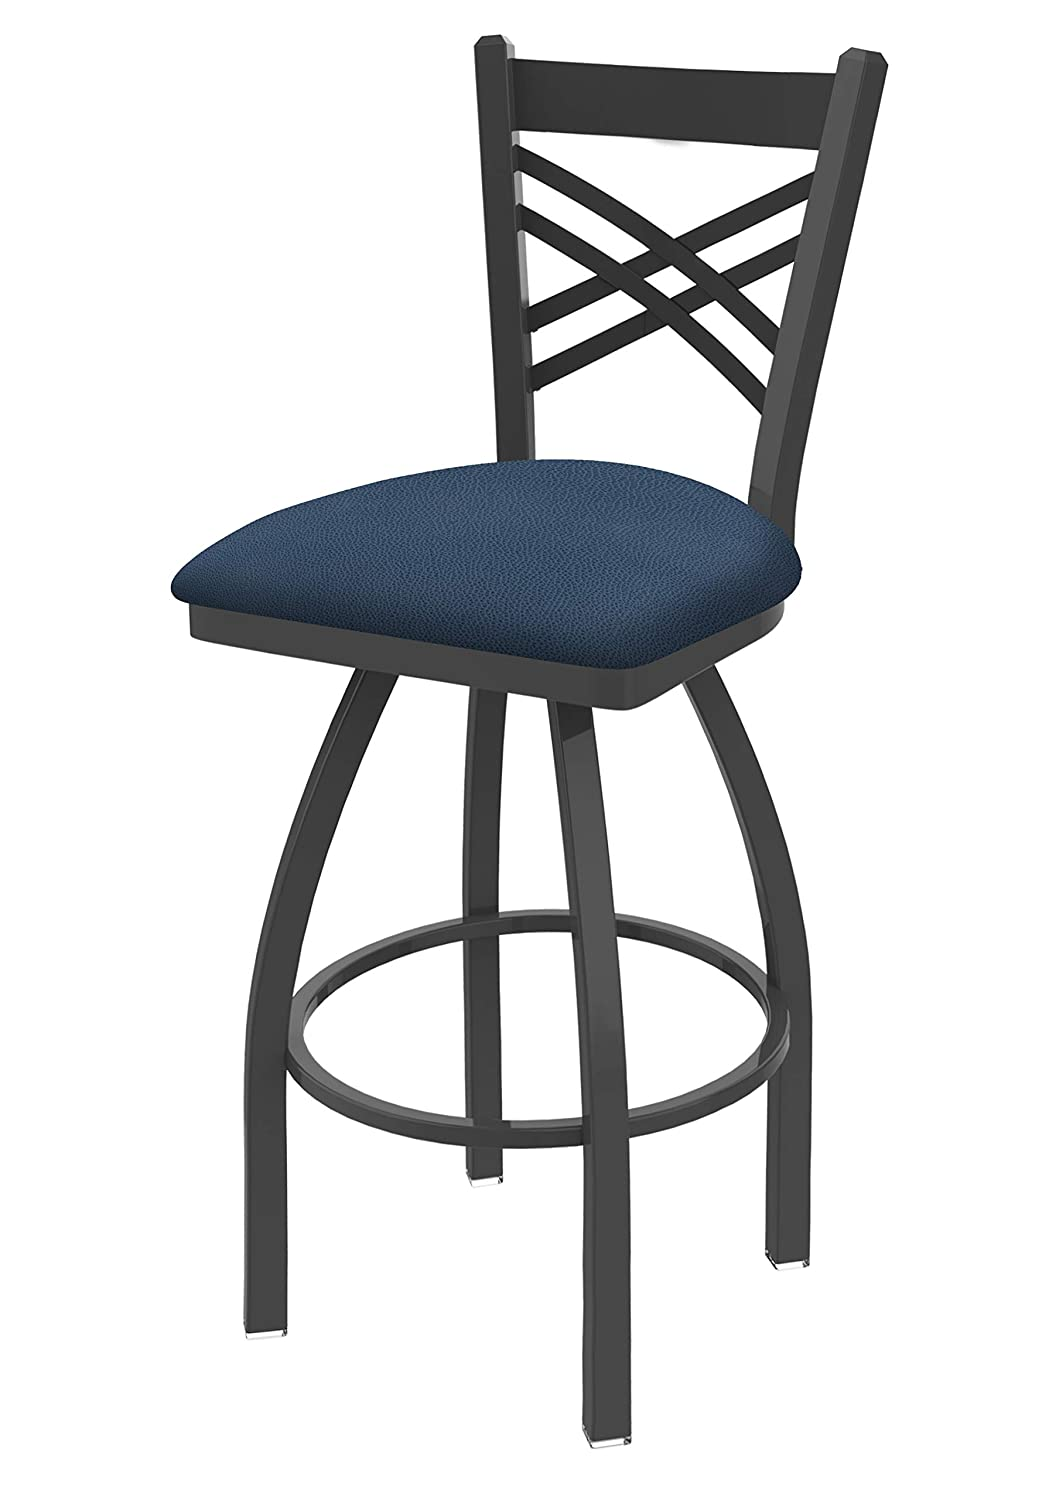 Holland Bar Stool Co. 82025PWReiBay 820 Catalina Counter Stool, 25 Seat Height, Rein Bay